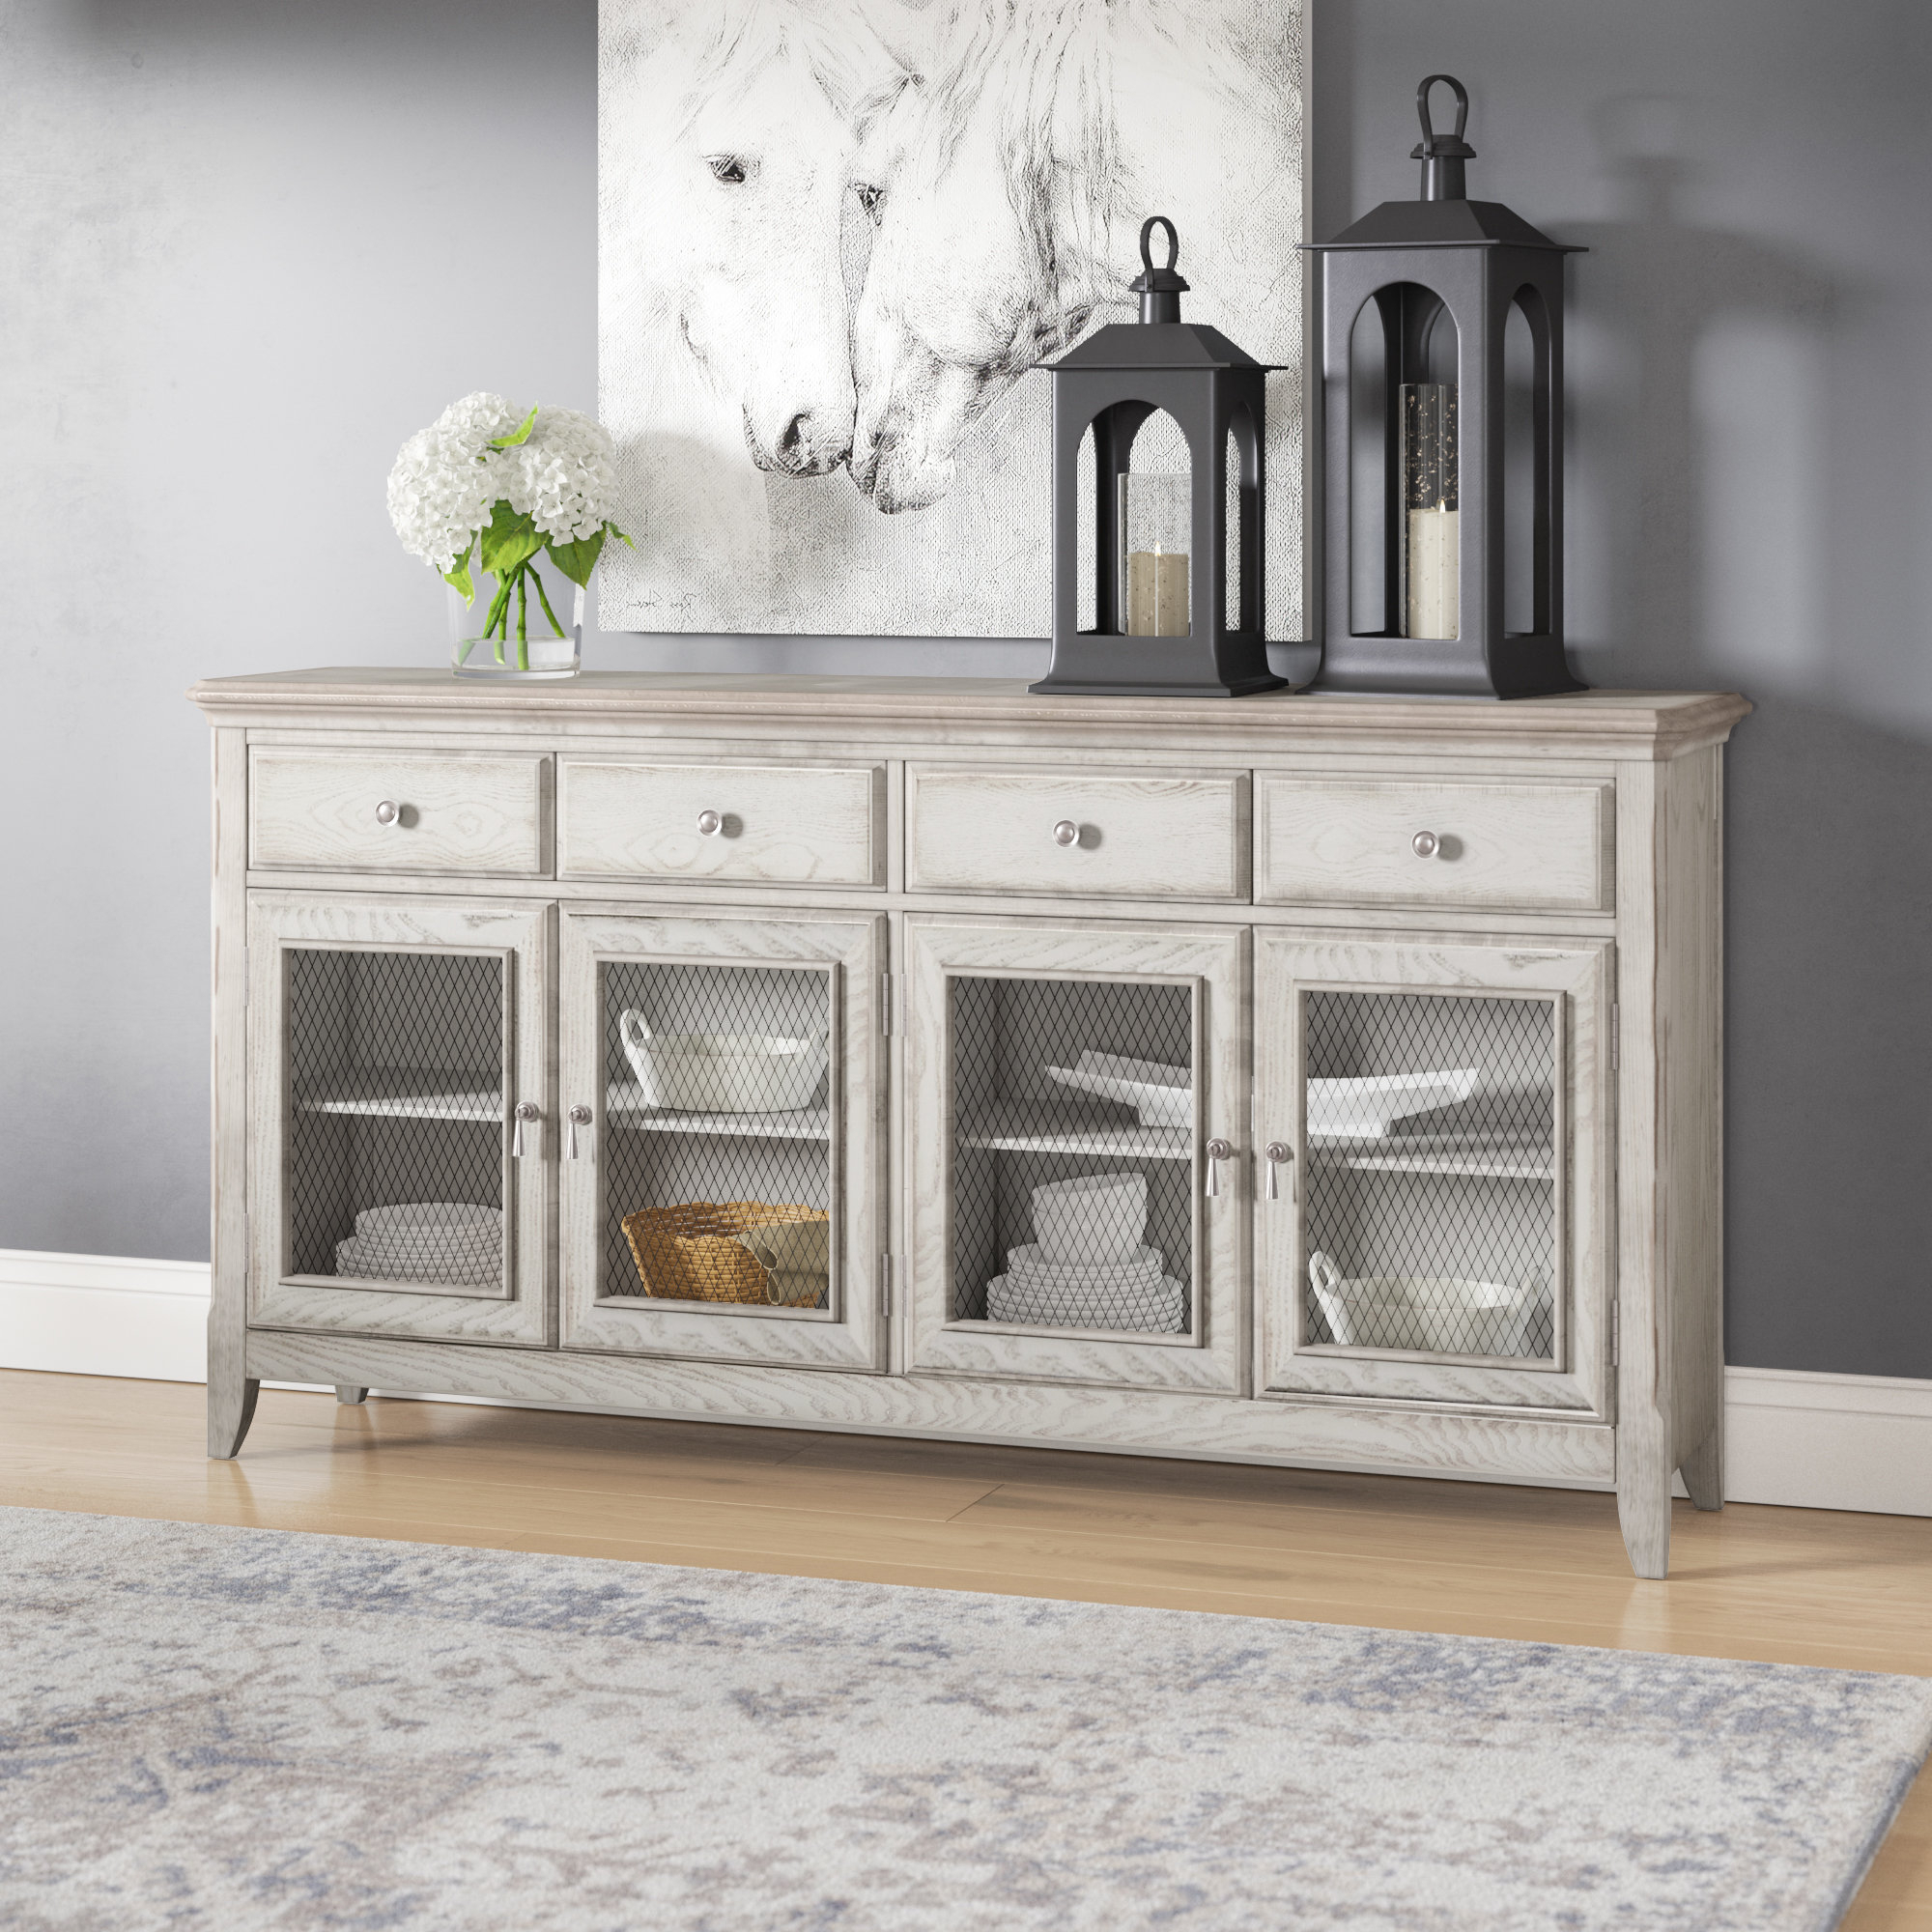 Elyza 4 Door Credenza | Wayfair Inside Elyza Credenzas (Gallery 4 of 20)